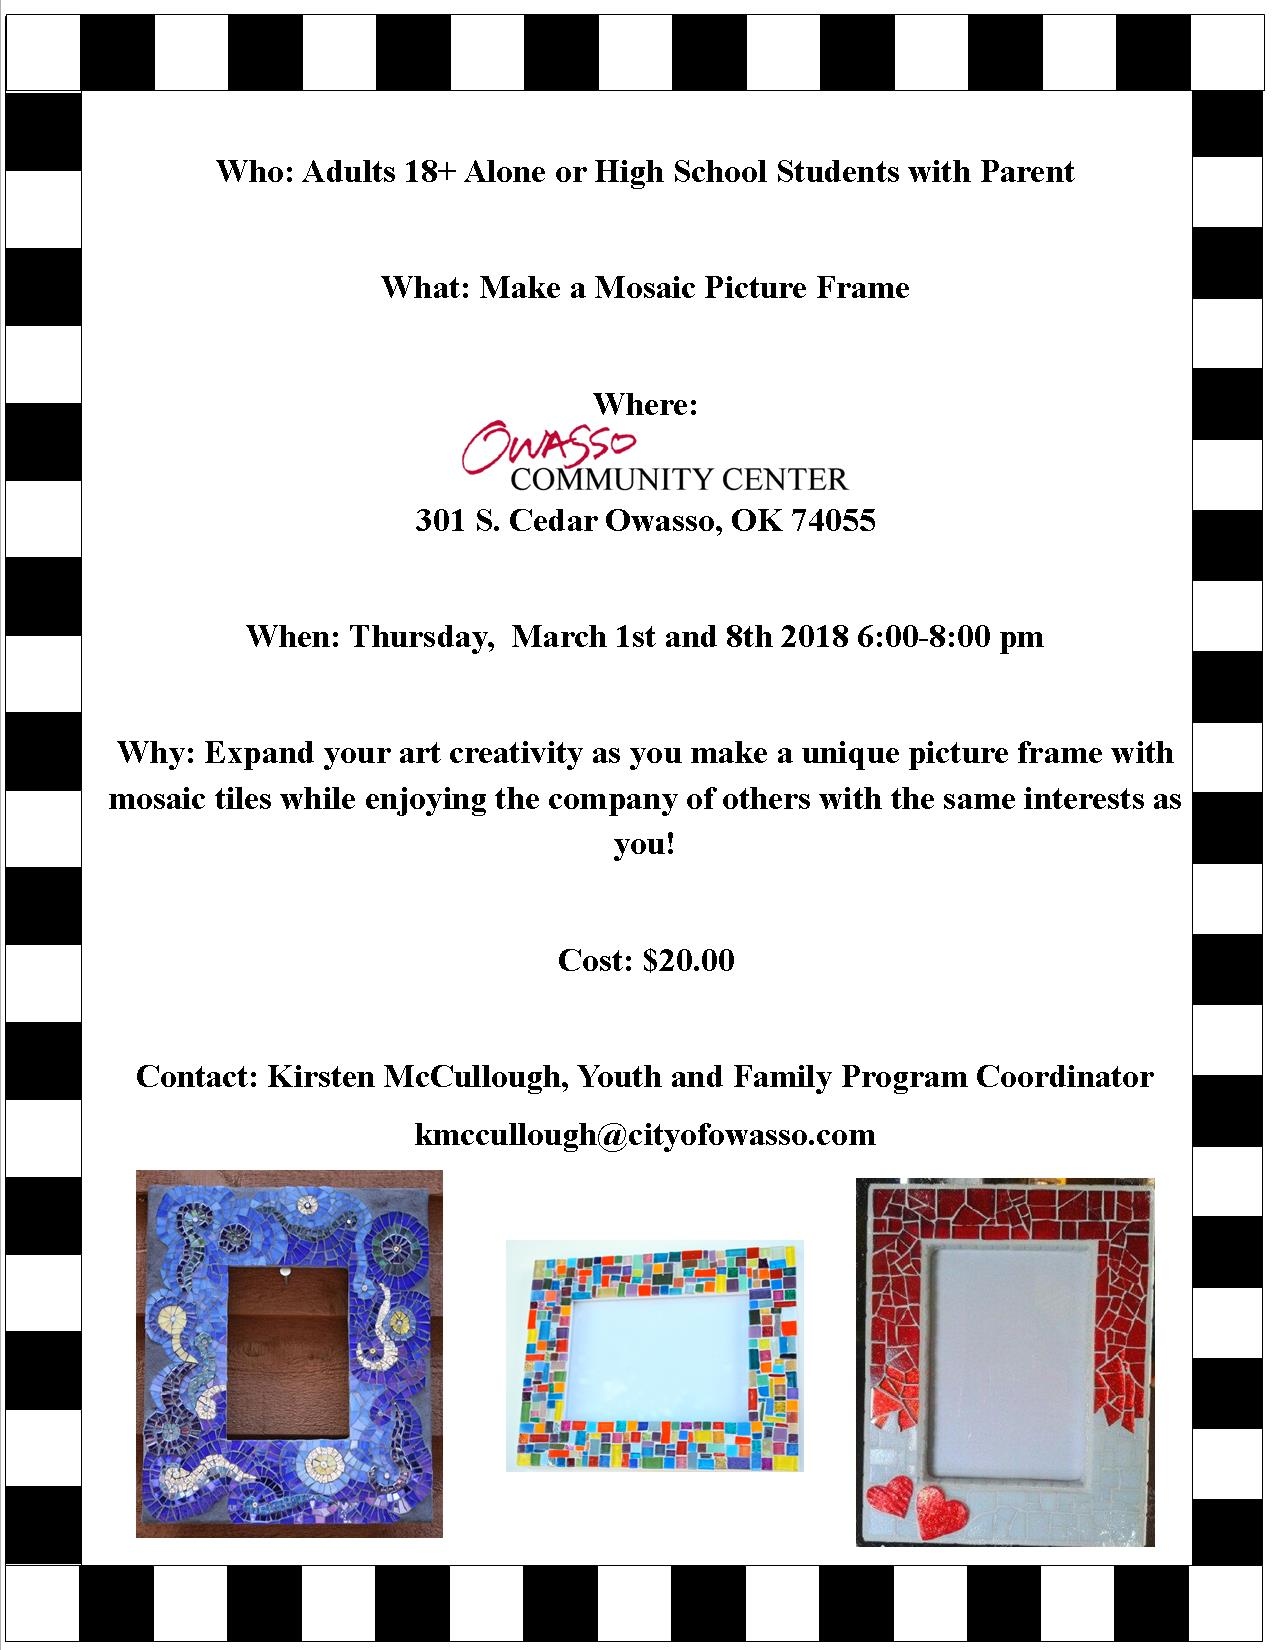 Mosaic Art Frame March 1st and 8th